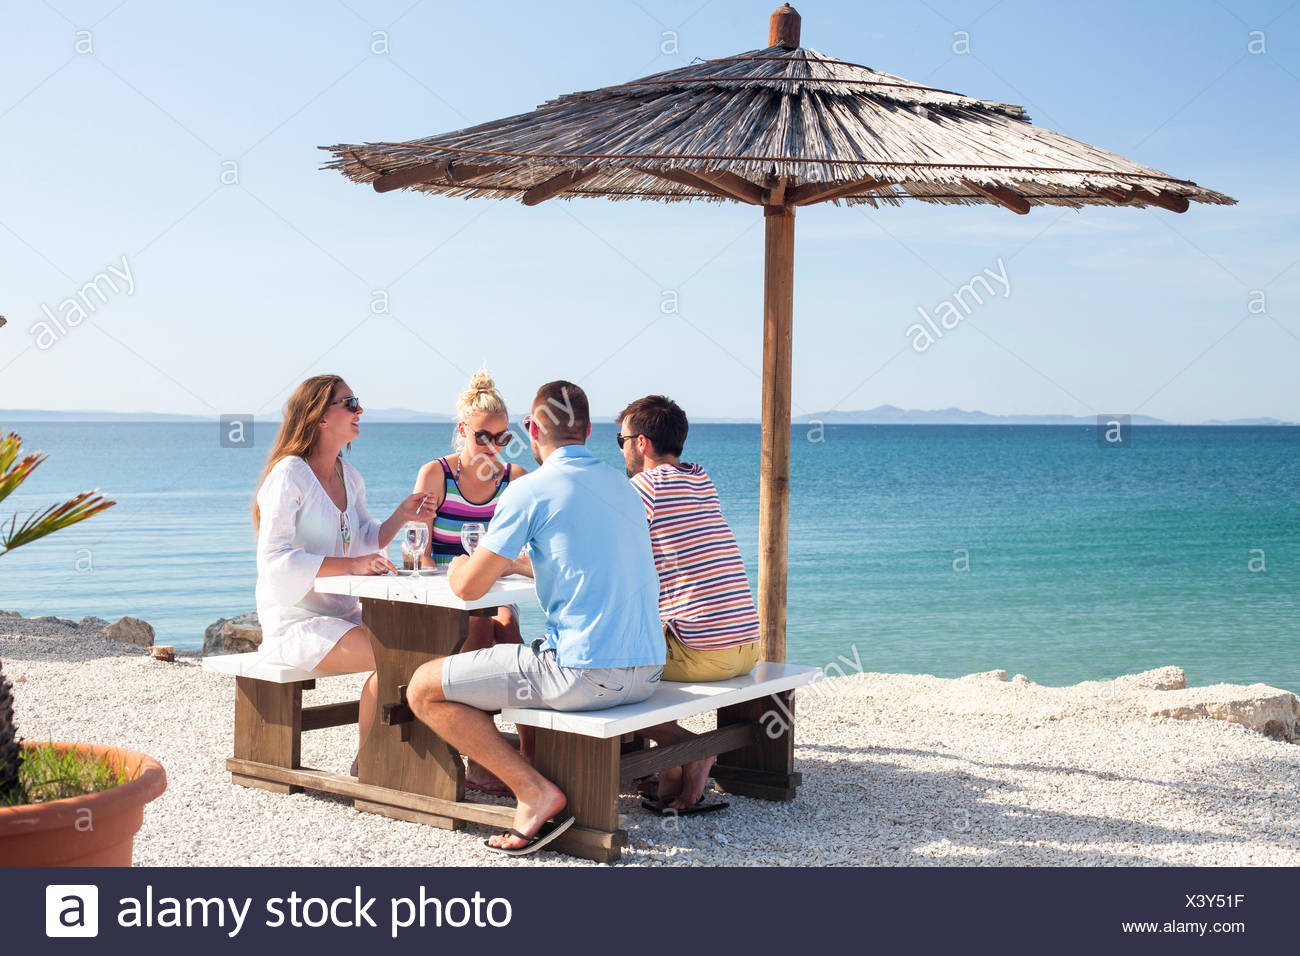 Group of friends sitting at table in beach bar - Stock Image